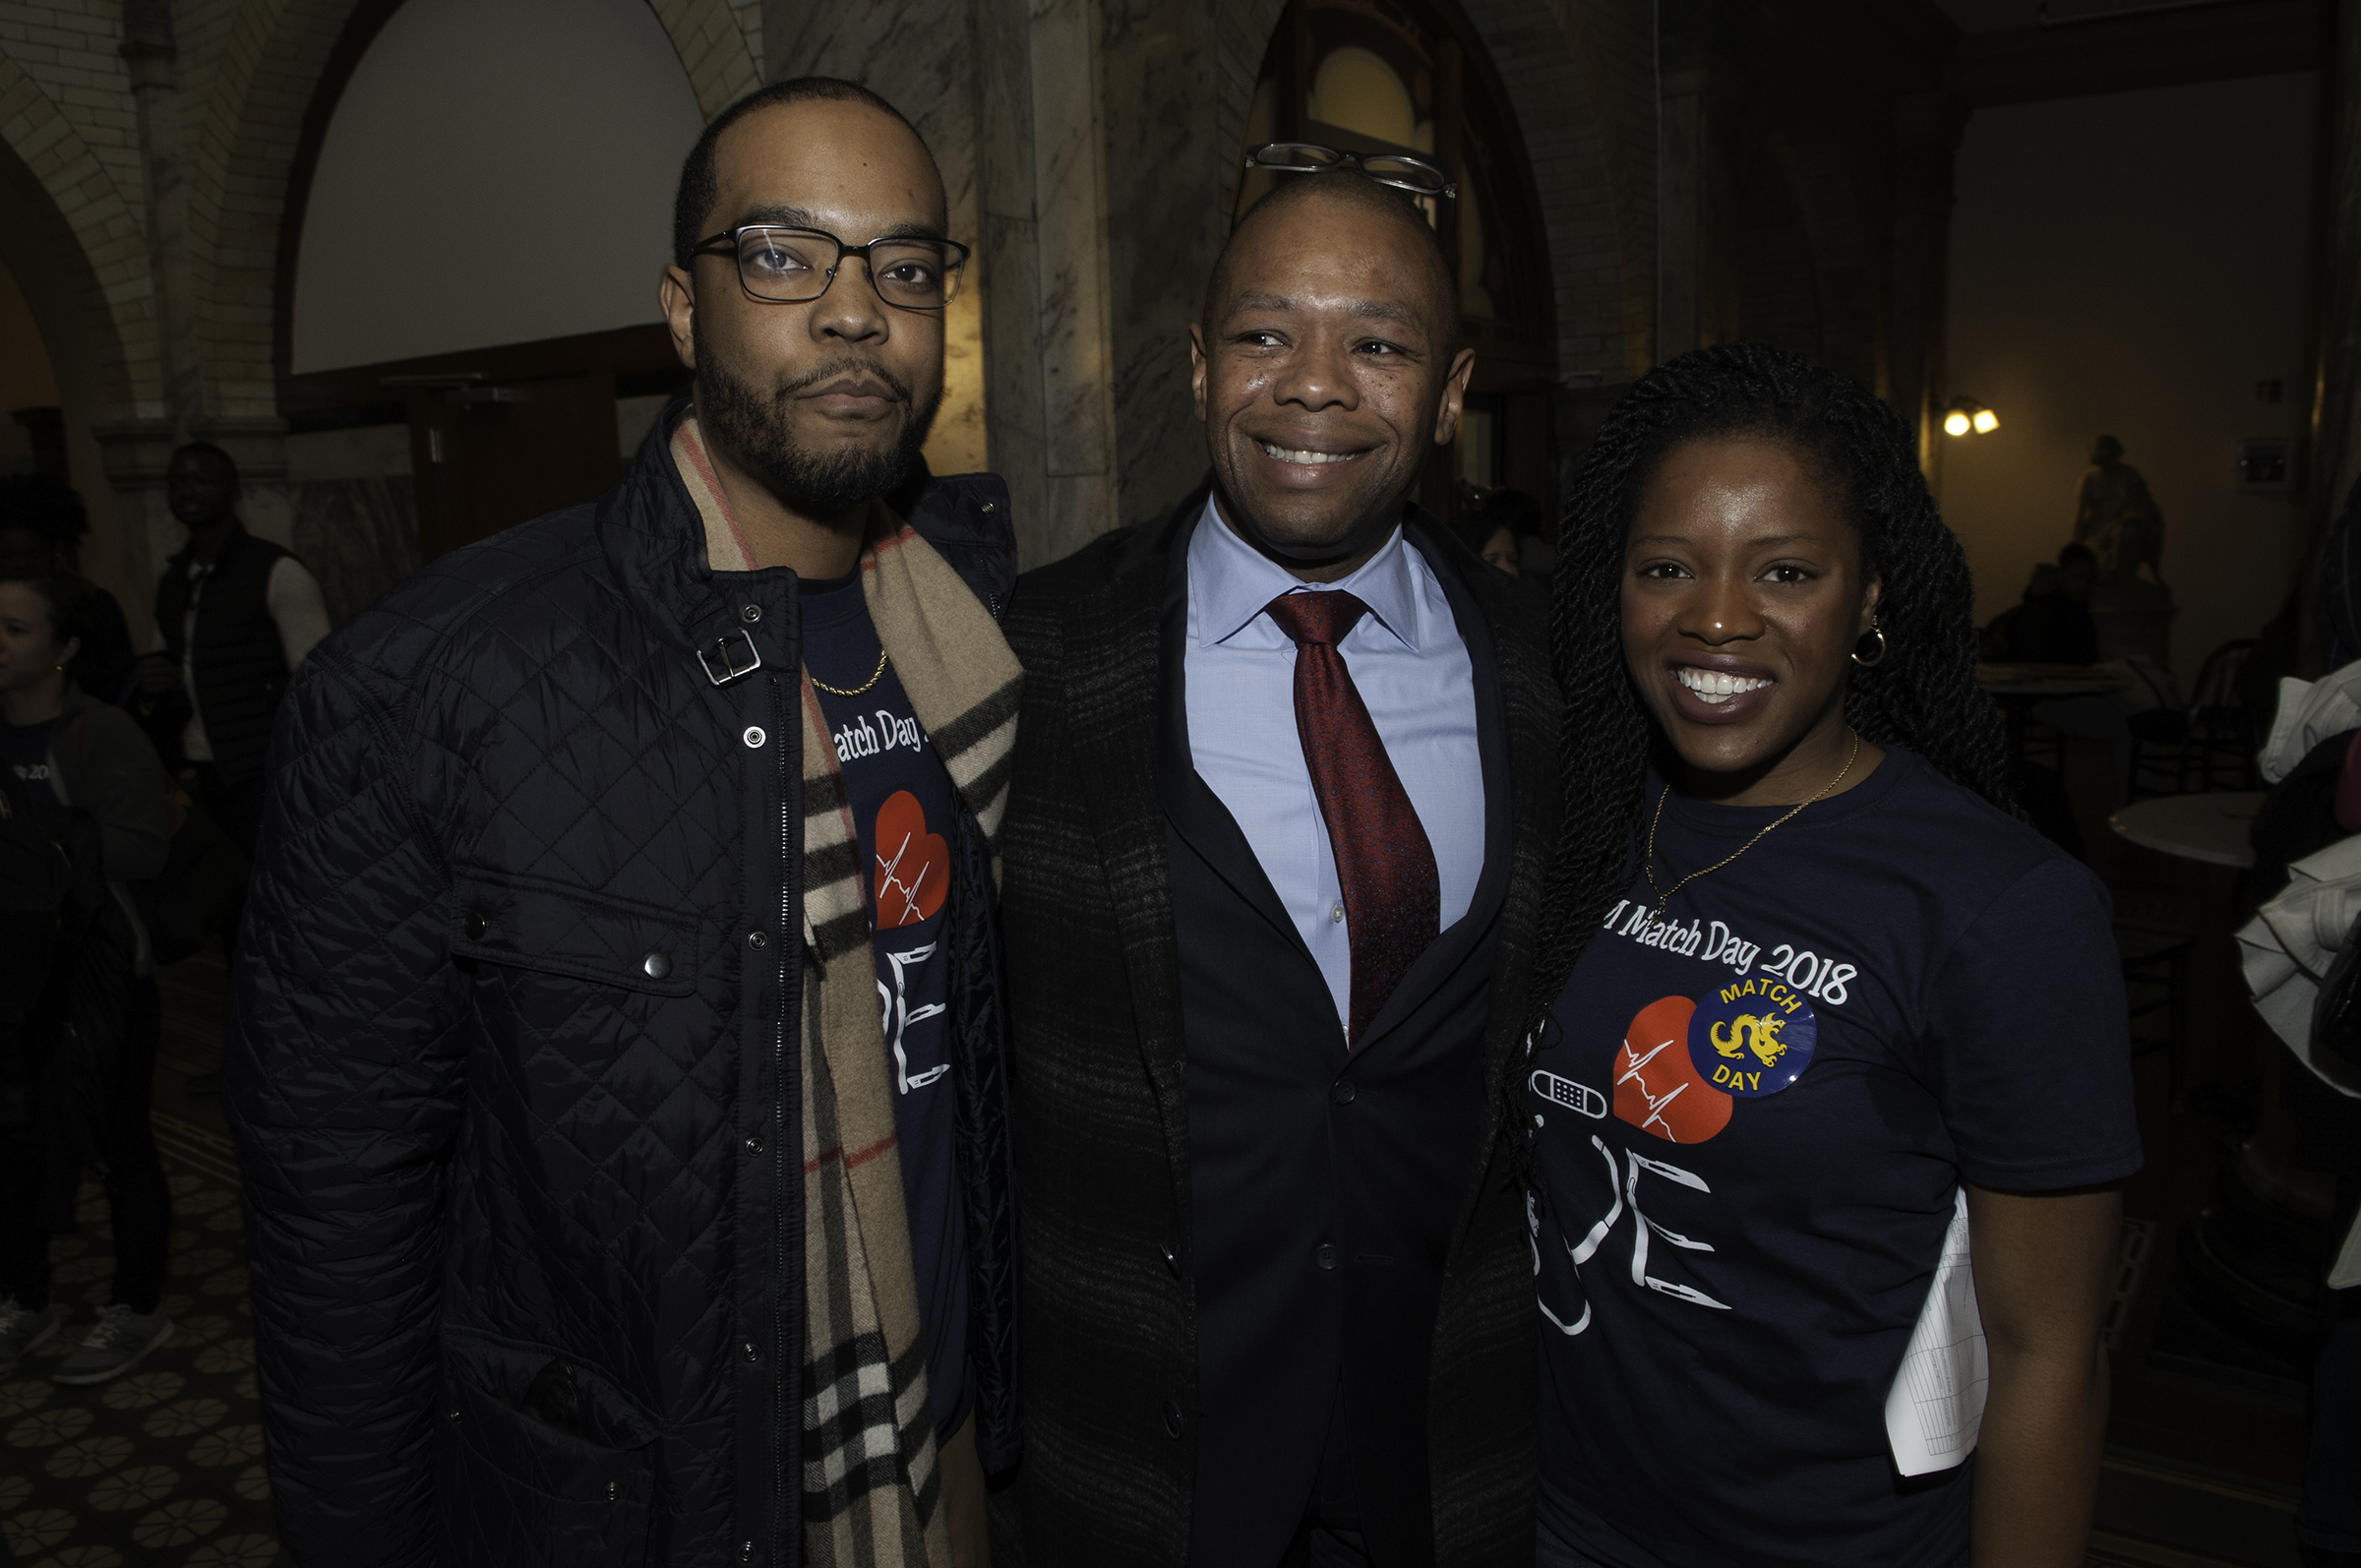 Medical students Dexter Graves (left), and Bisola Egbe (right) celebrate at medical student Match Day with Dr. Ted Corbin (center), who served as adviser to their network. (RAYMOND W HOLMAN JR / For the Philadelphia Inquirer )